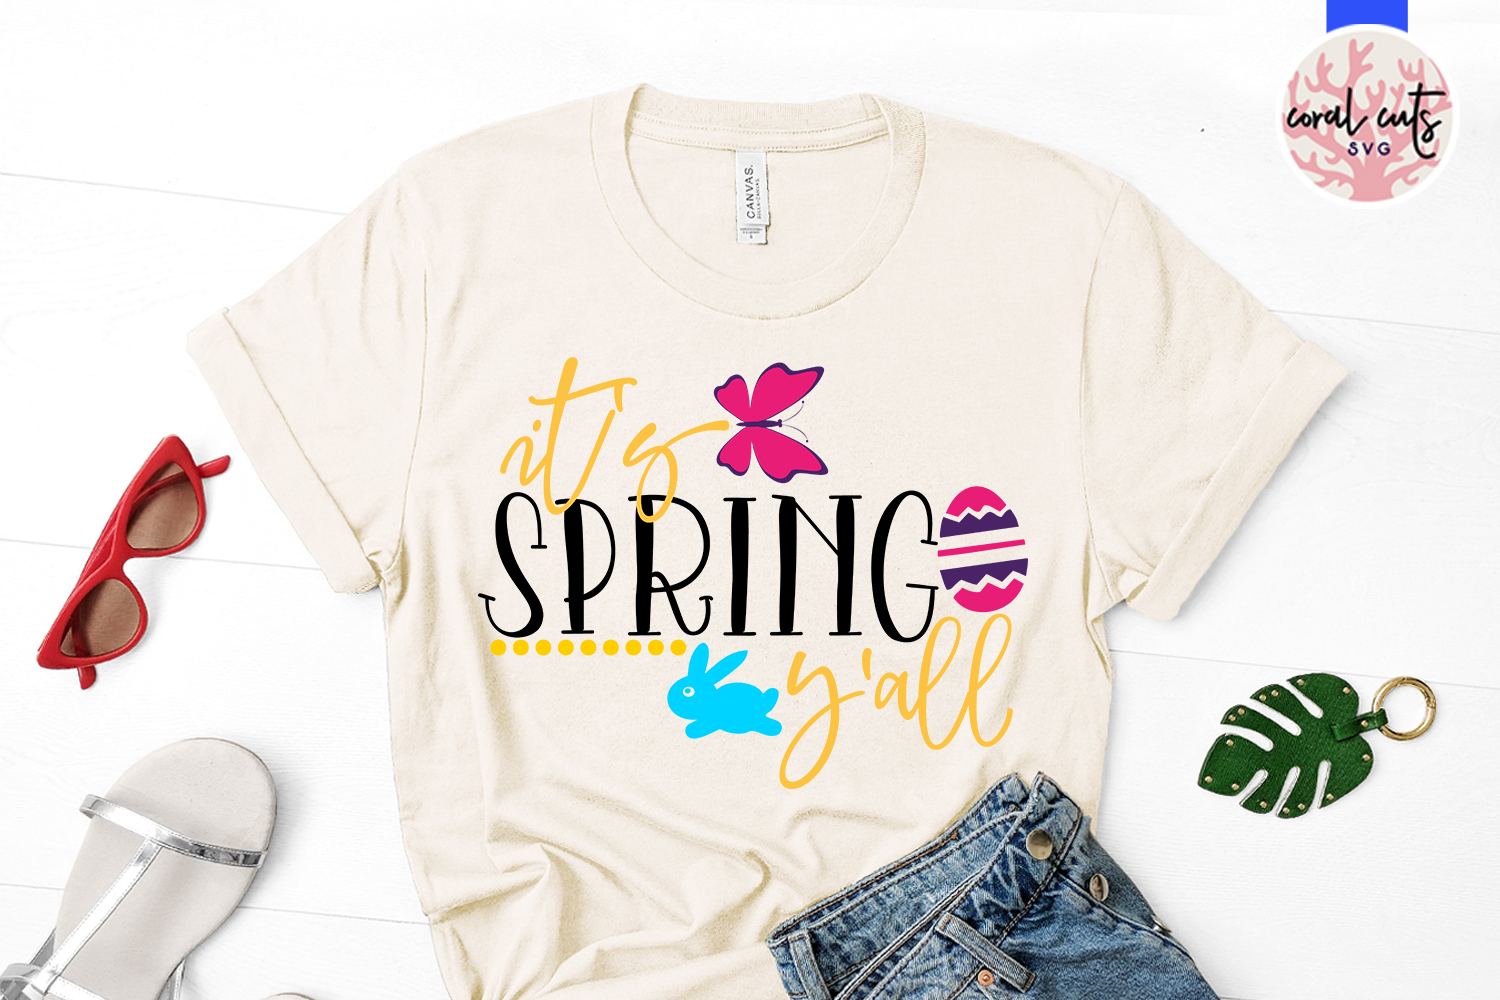 It's spring y'all - Easter SVG EPS DXF PNG Cutting File example image 2